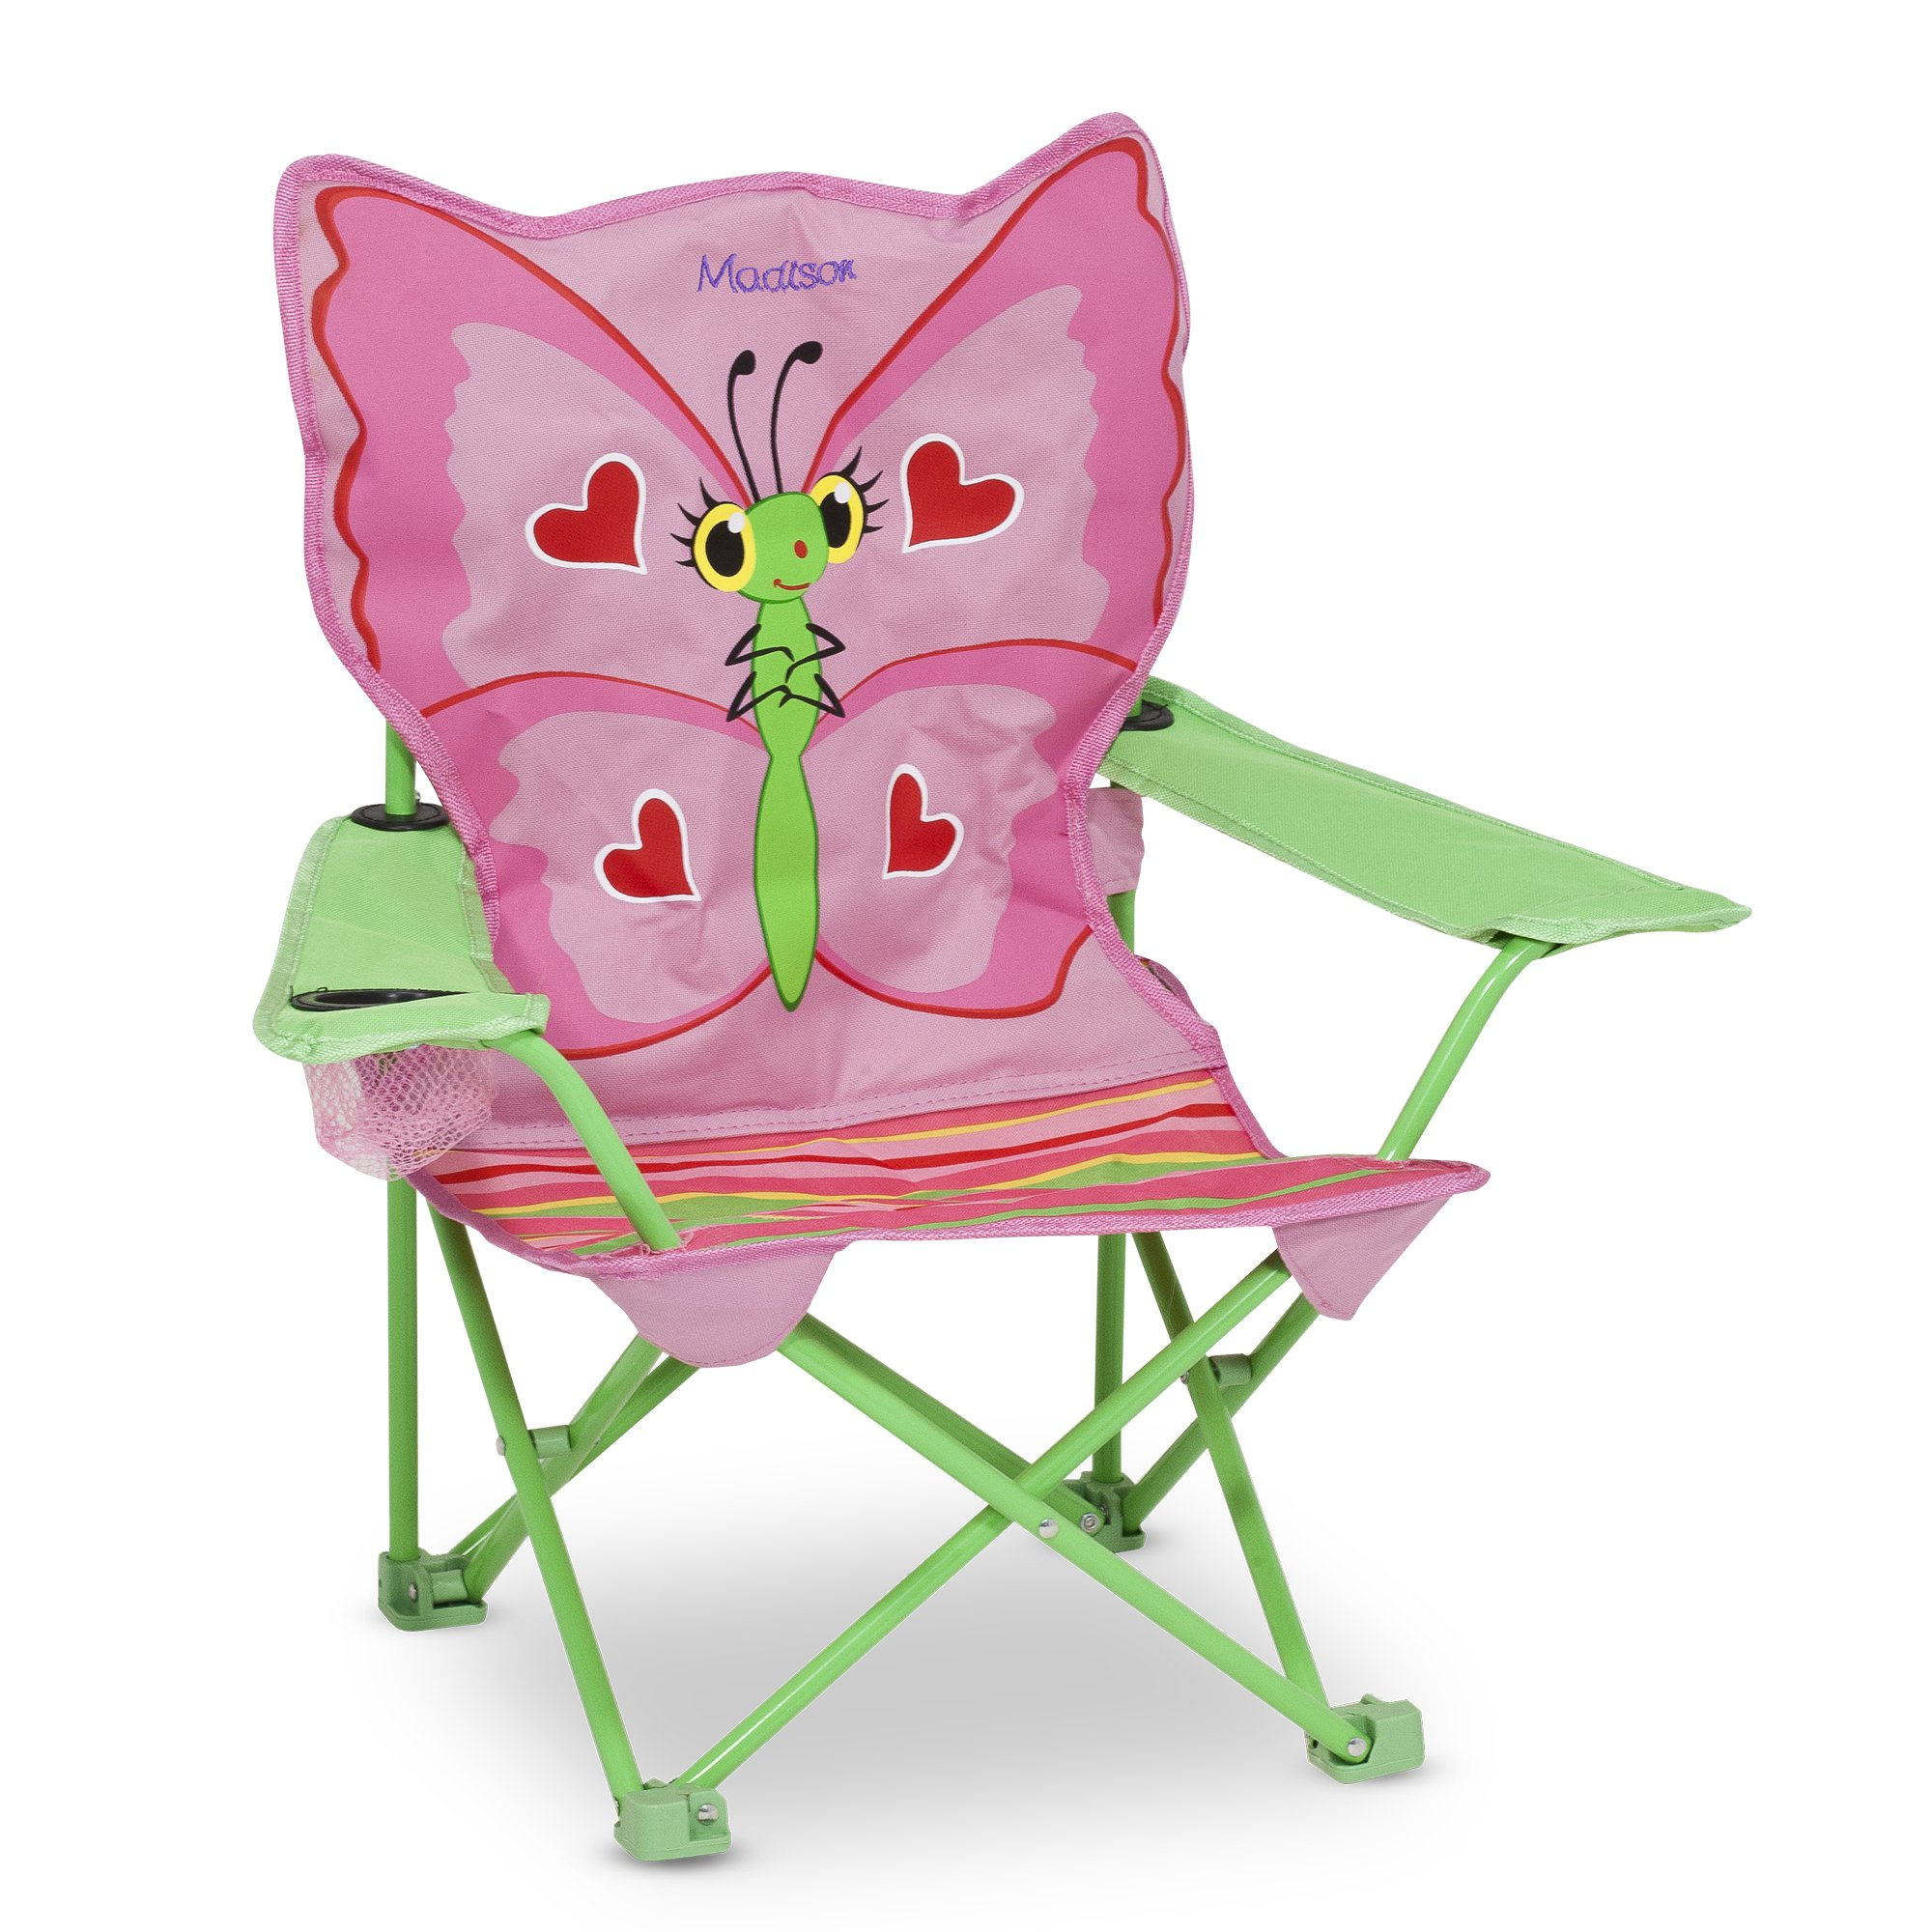 Melissa & Doug Personalized Sunny Patch Bella Butterfly Outdoor Folding Lawn & Camping Chair by Melissa & Doug